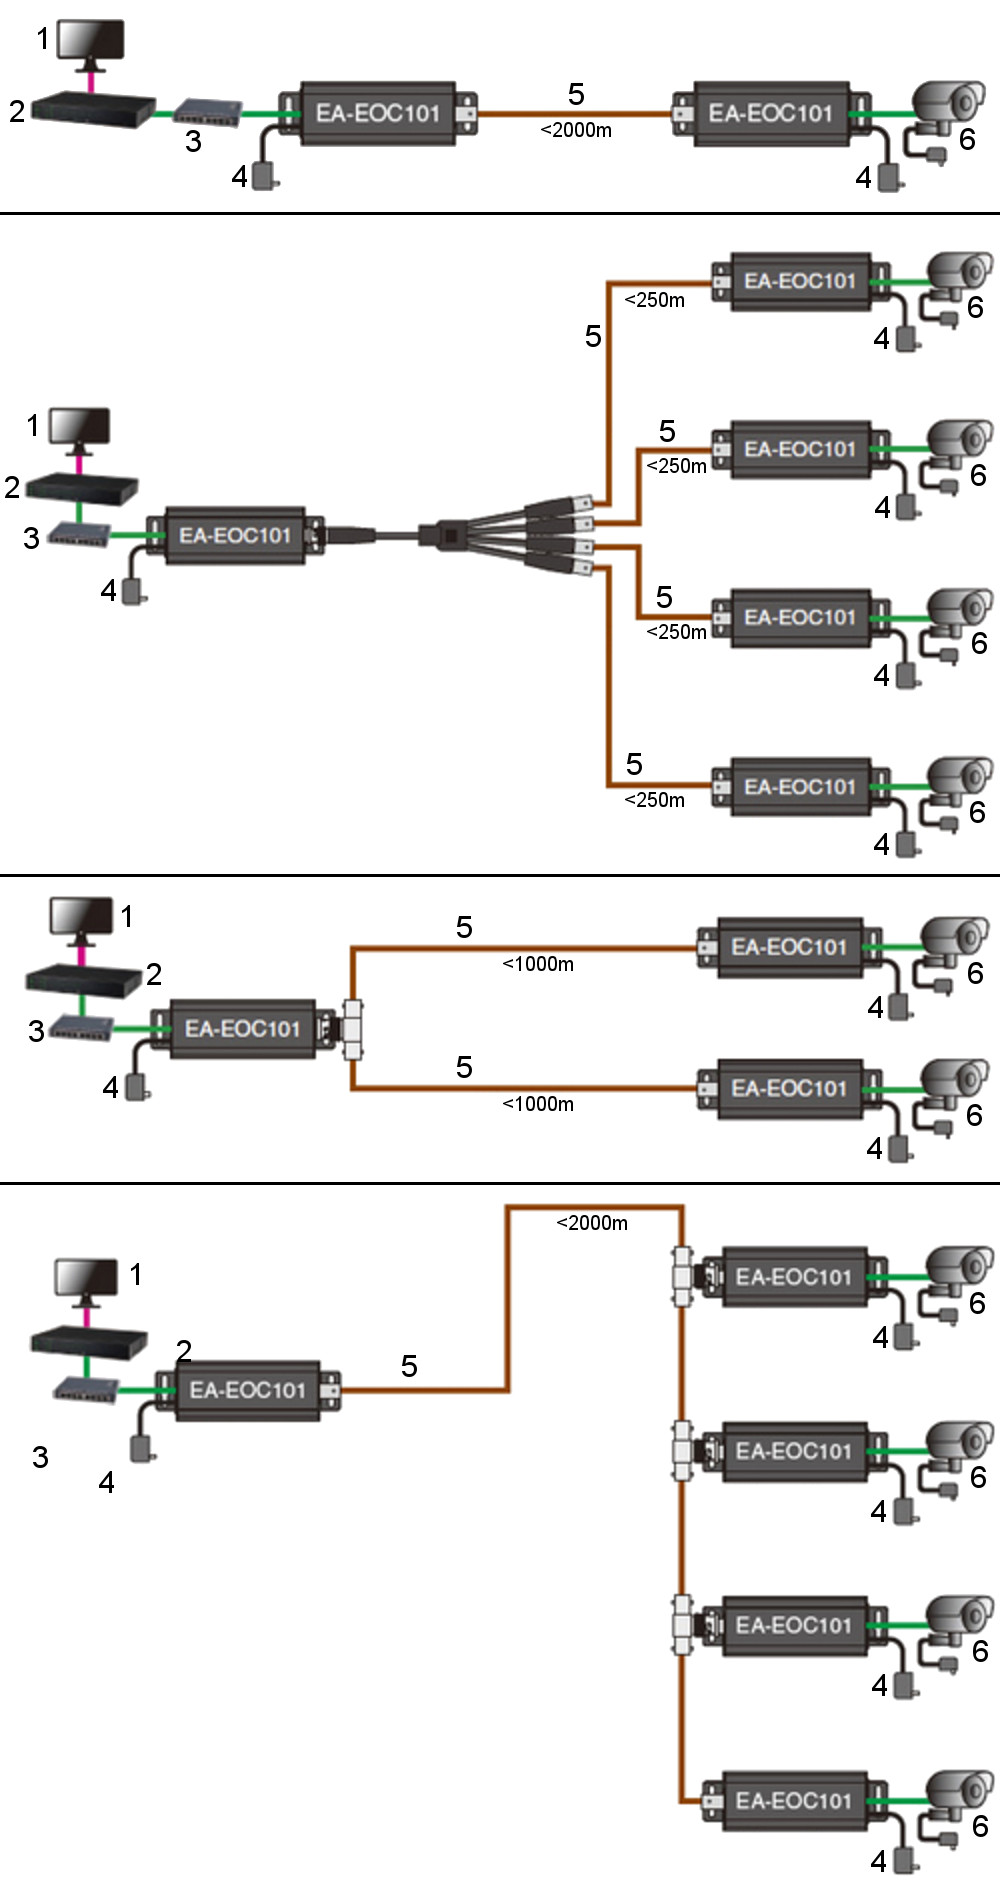 hight resolution of extender ethernet over coaxial cable ea eoc101 cop